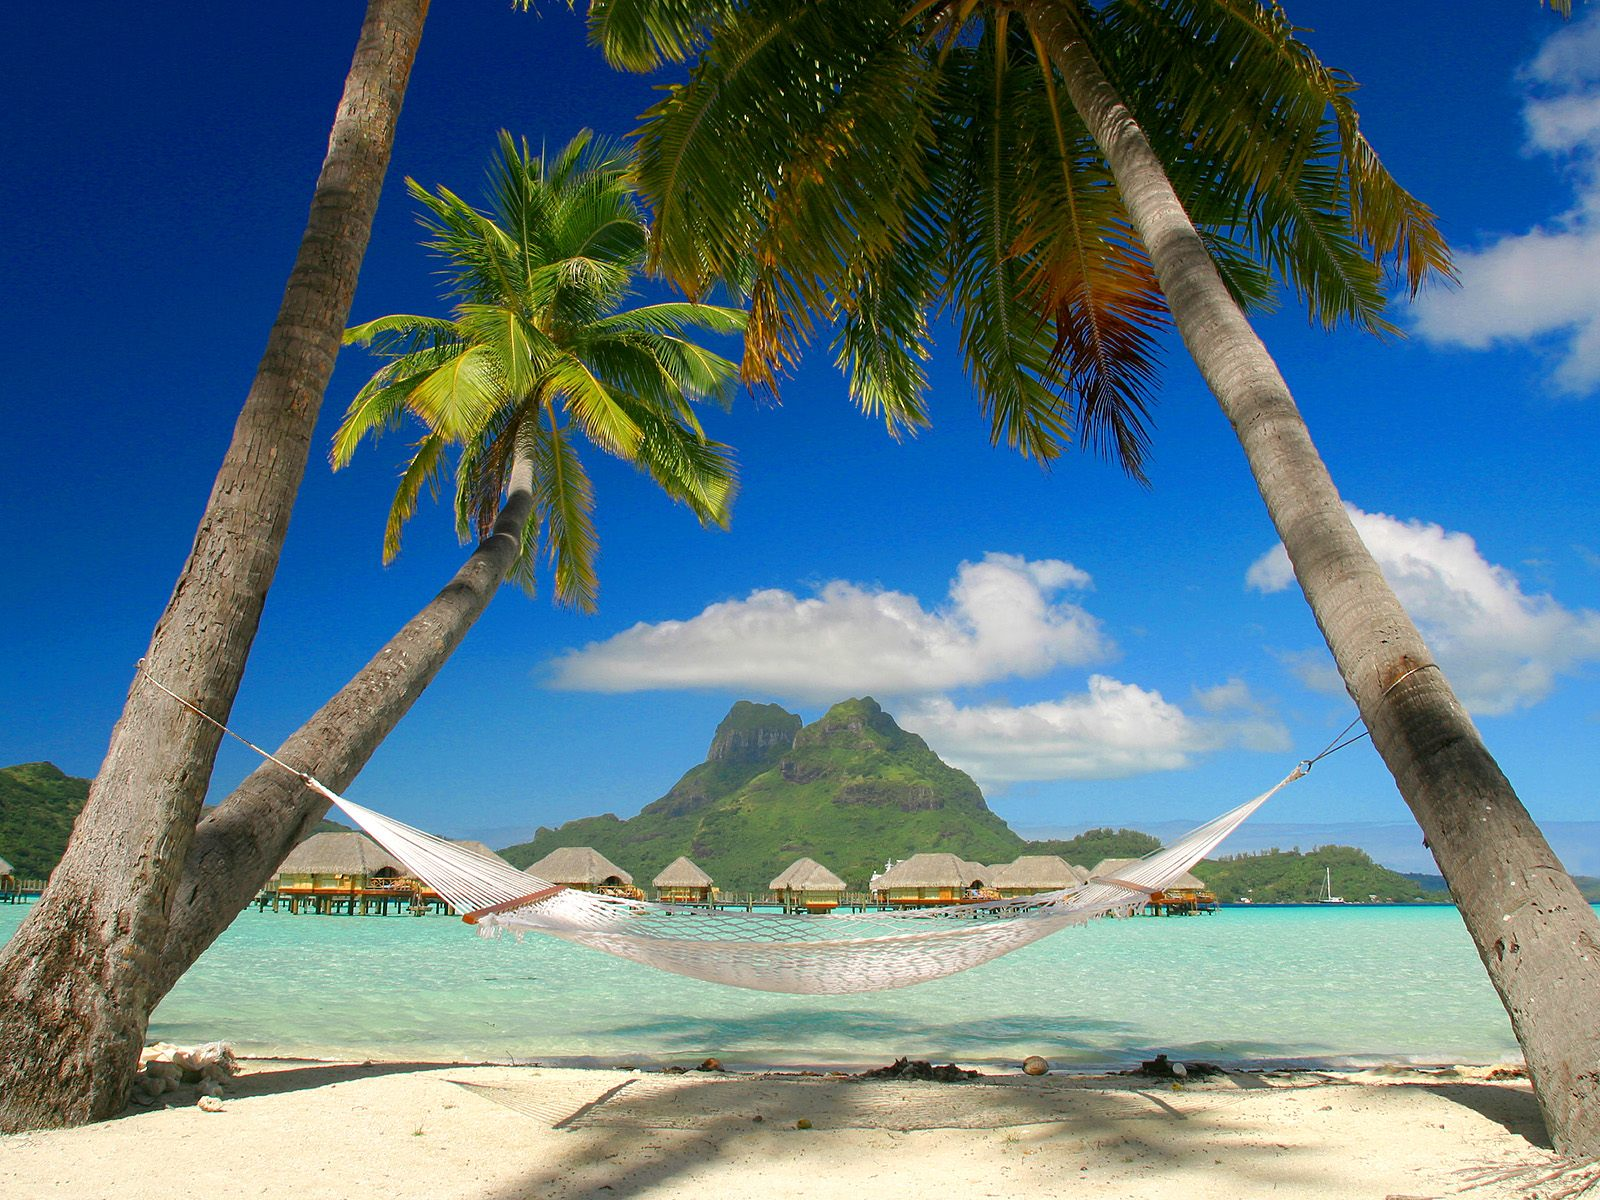 hd tropical island beach paradise wallpapers and backgrounds 1600x1200